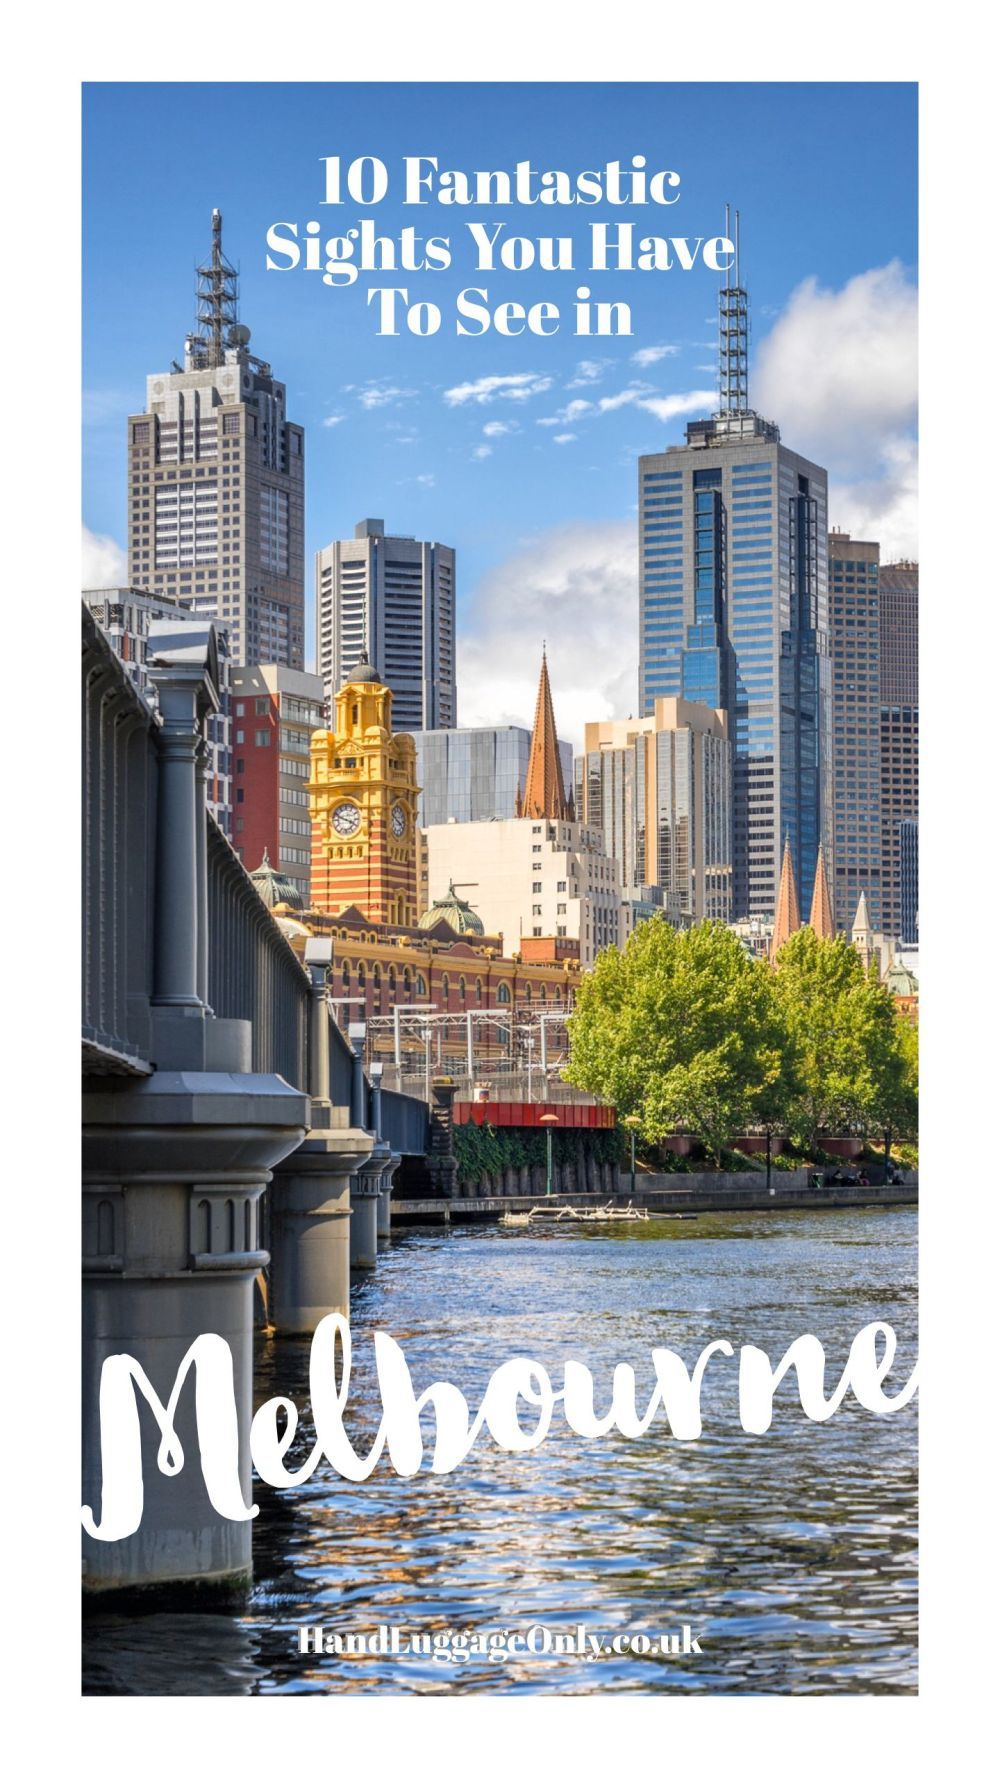 10 Fantastic Sights You Have To See in Melbourne, Australia (1)